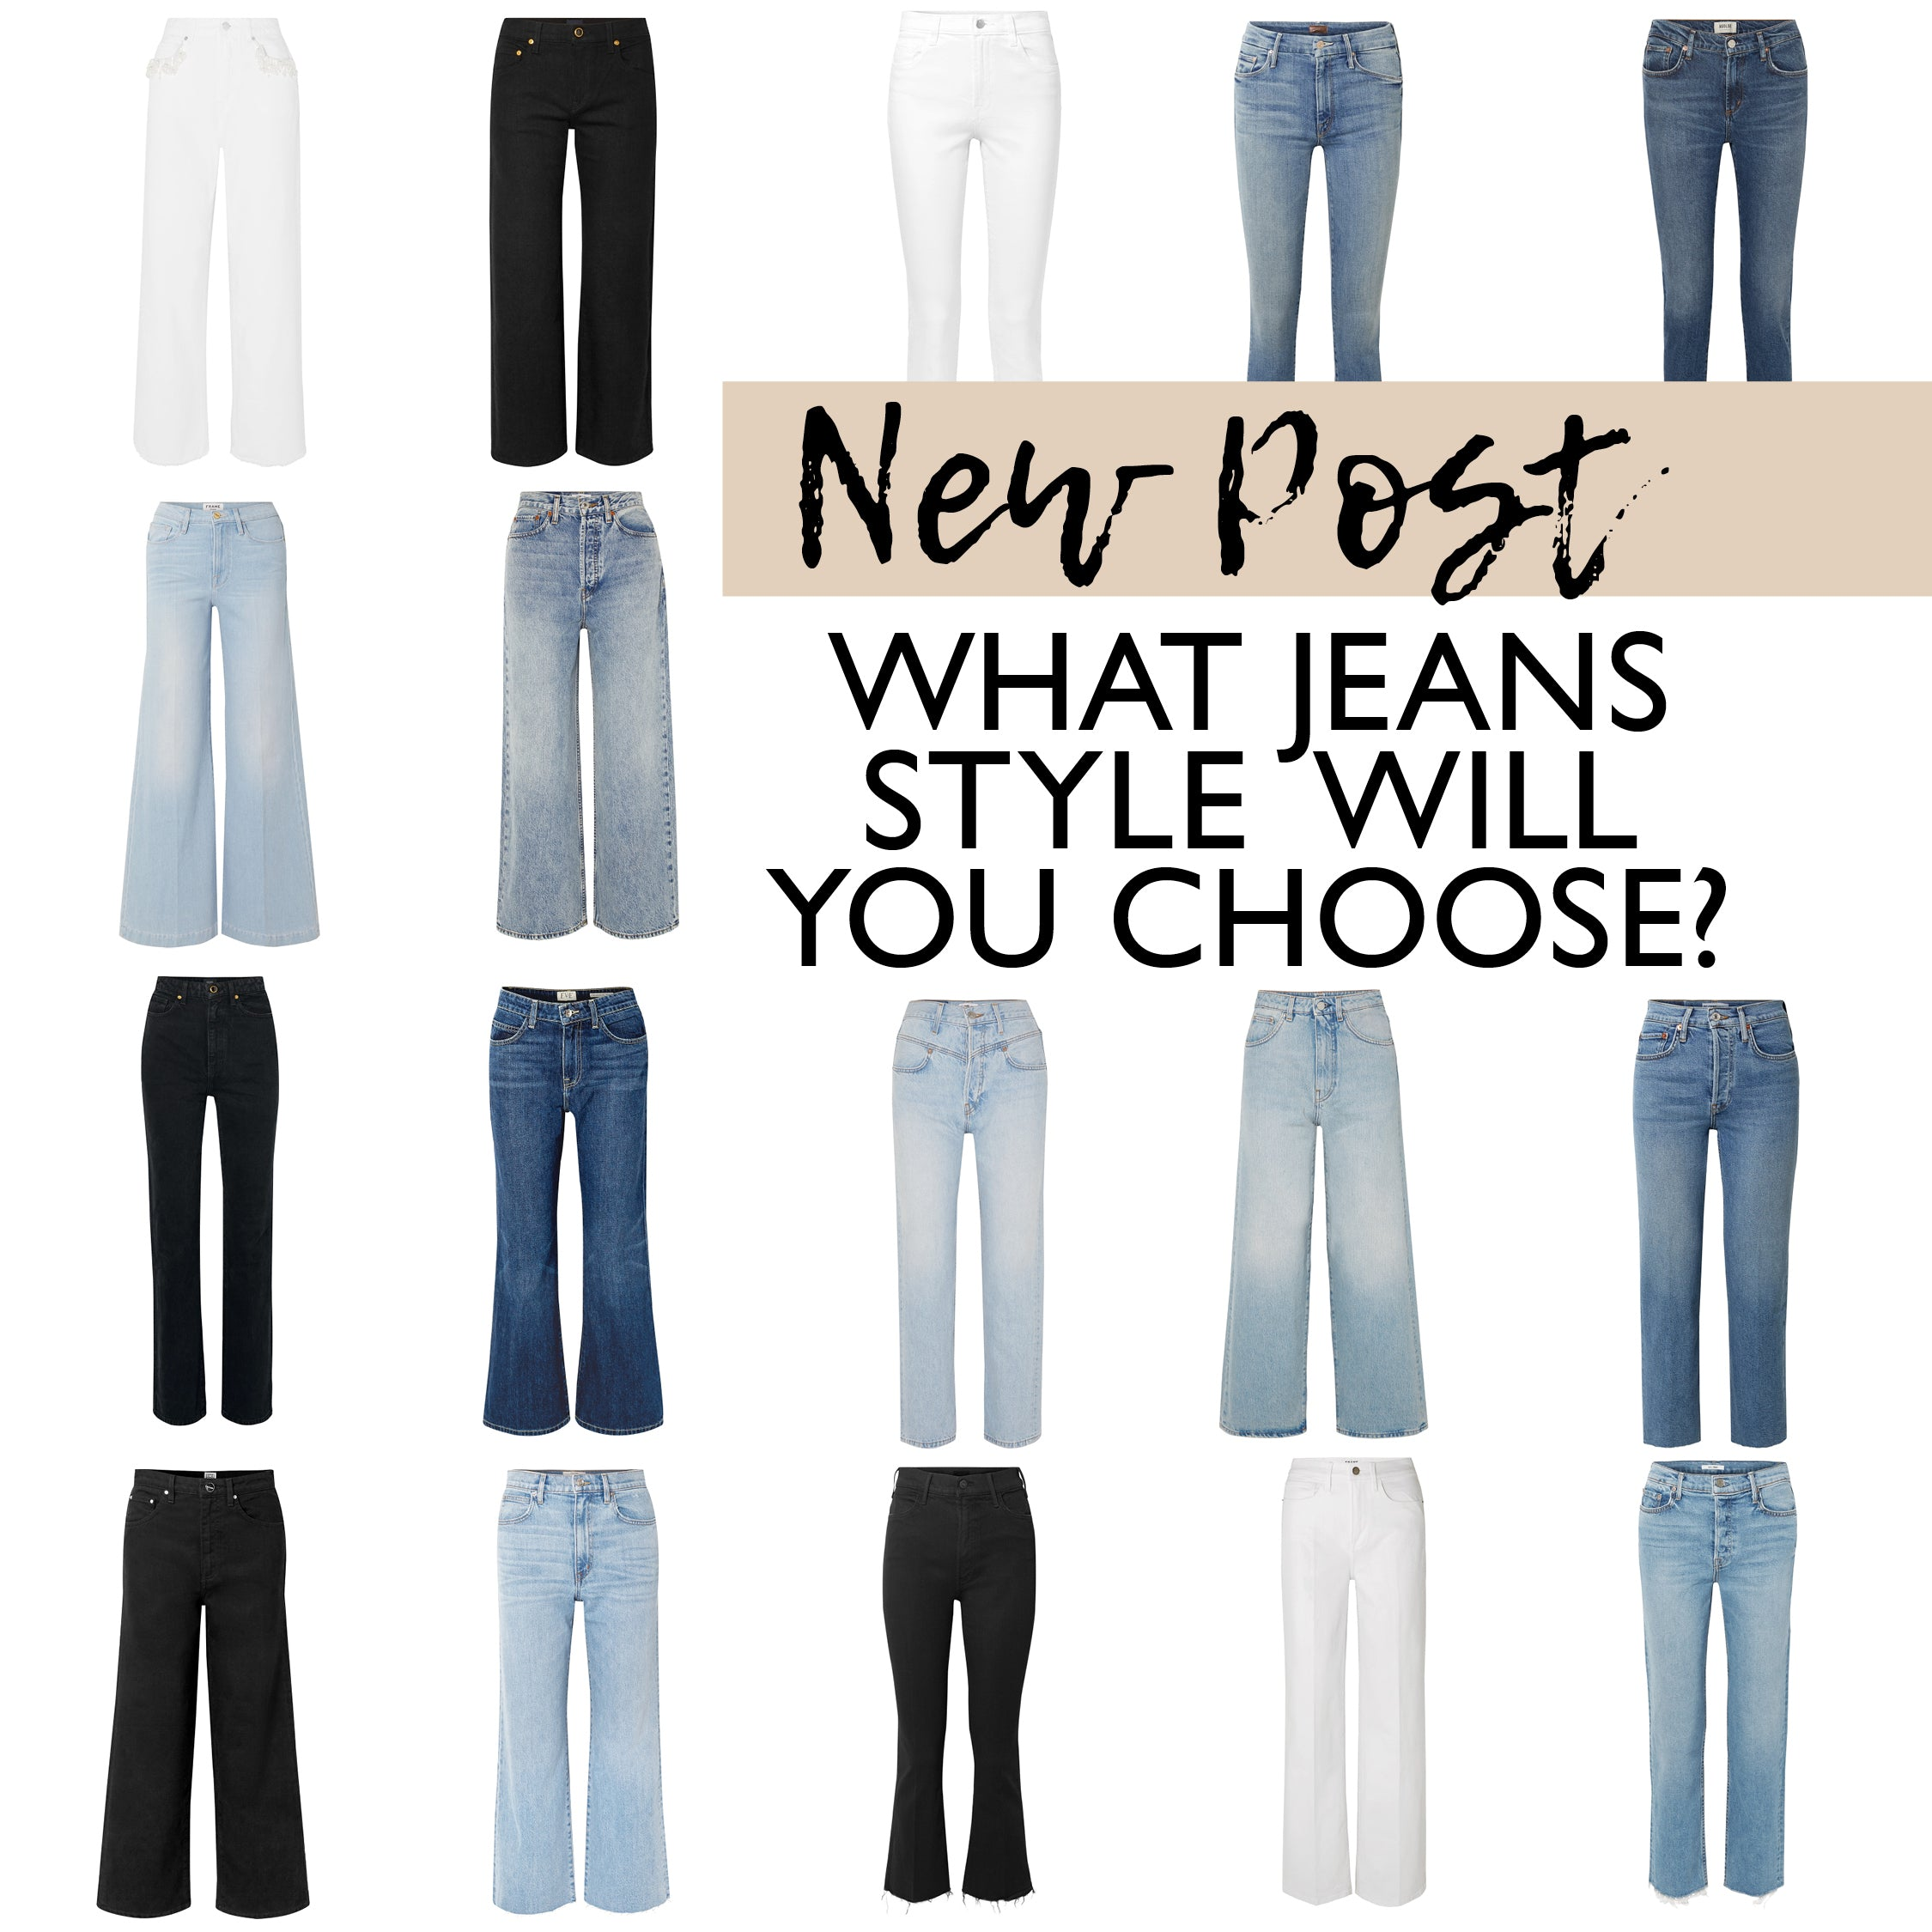 Jeans - Capsule Wardrobe Collection - Jeans Style and Types